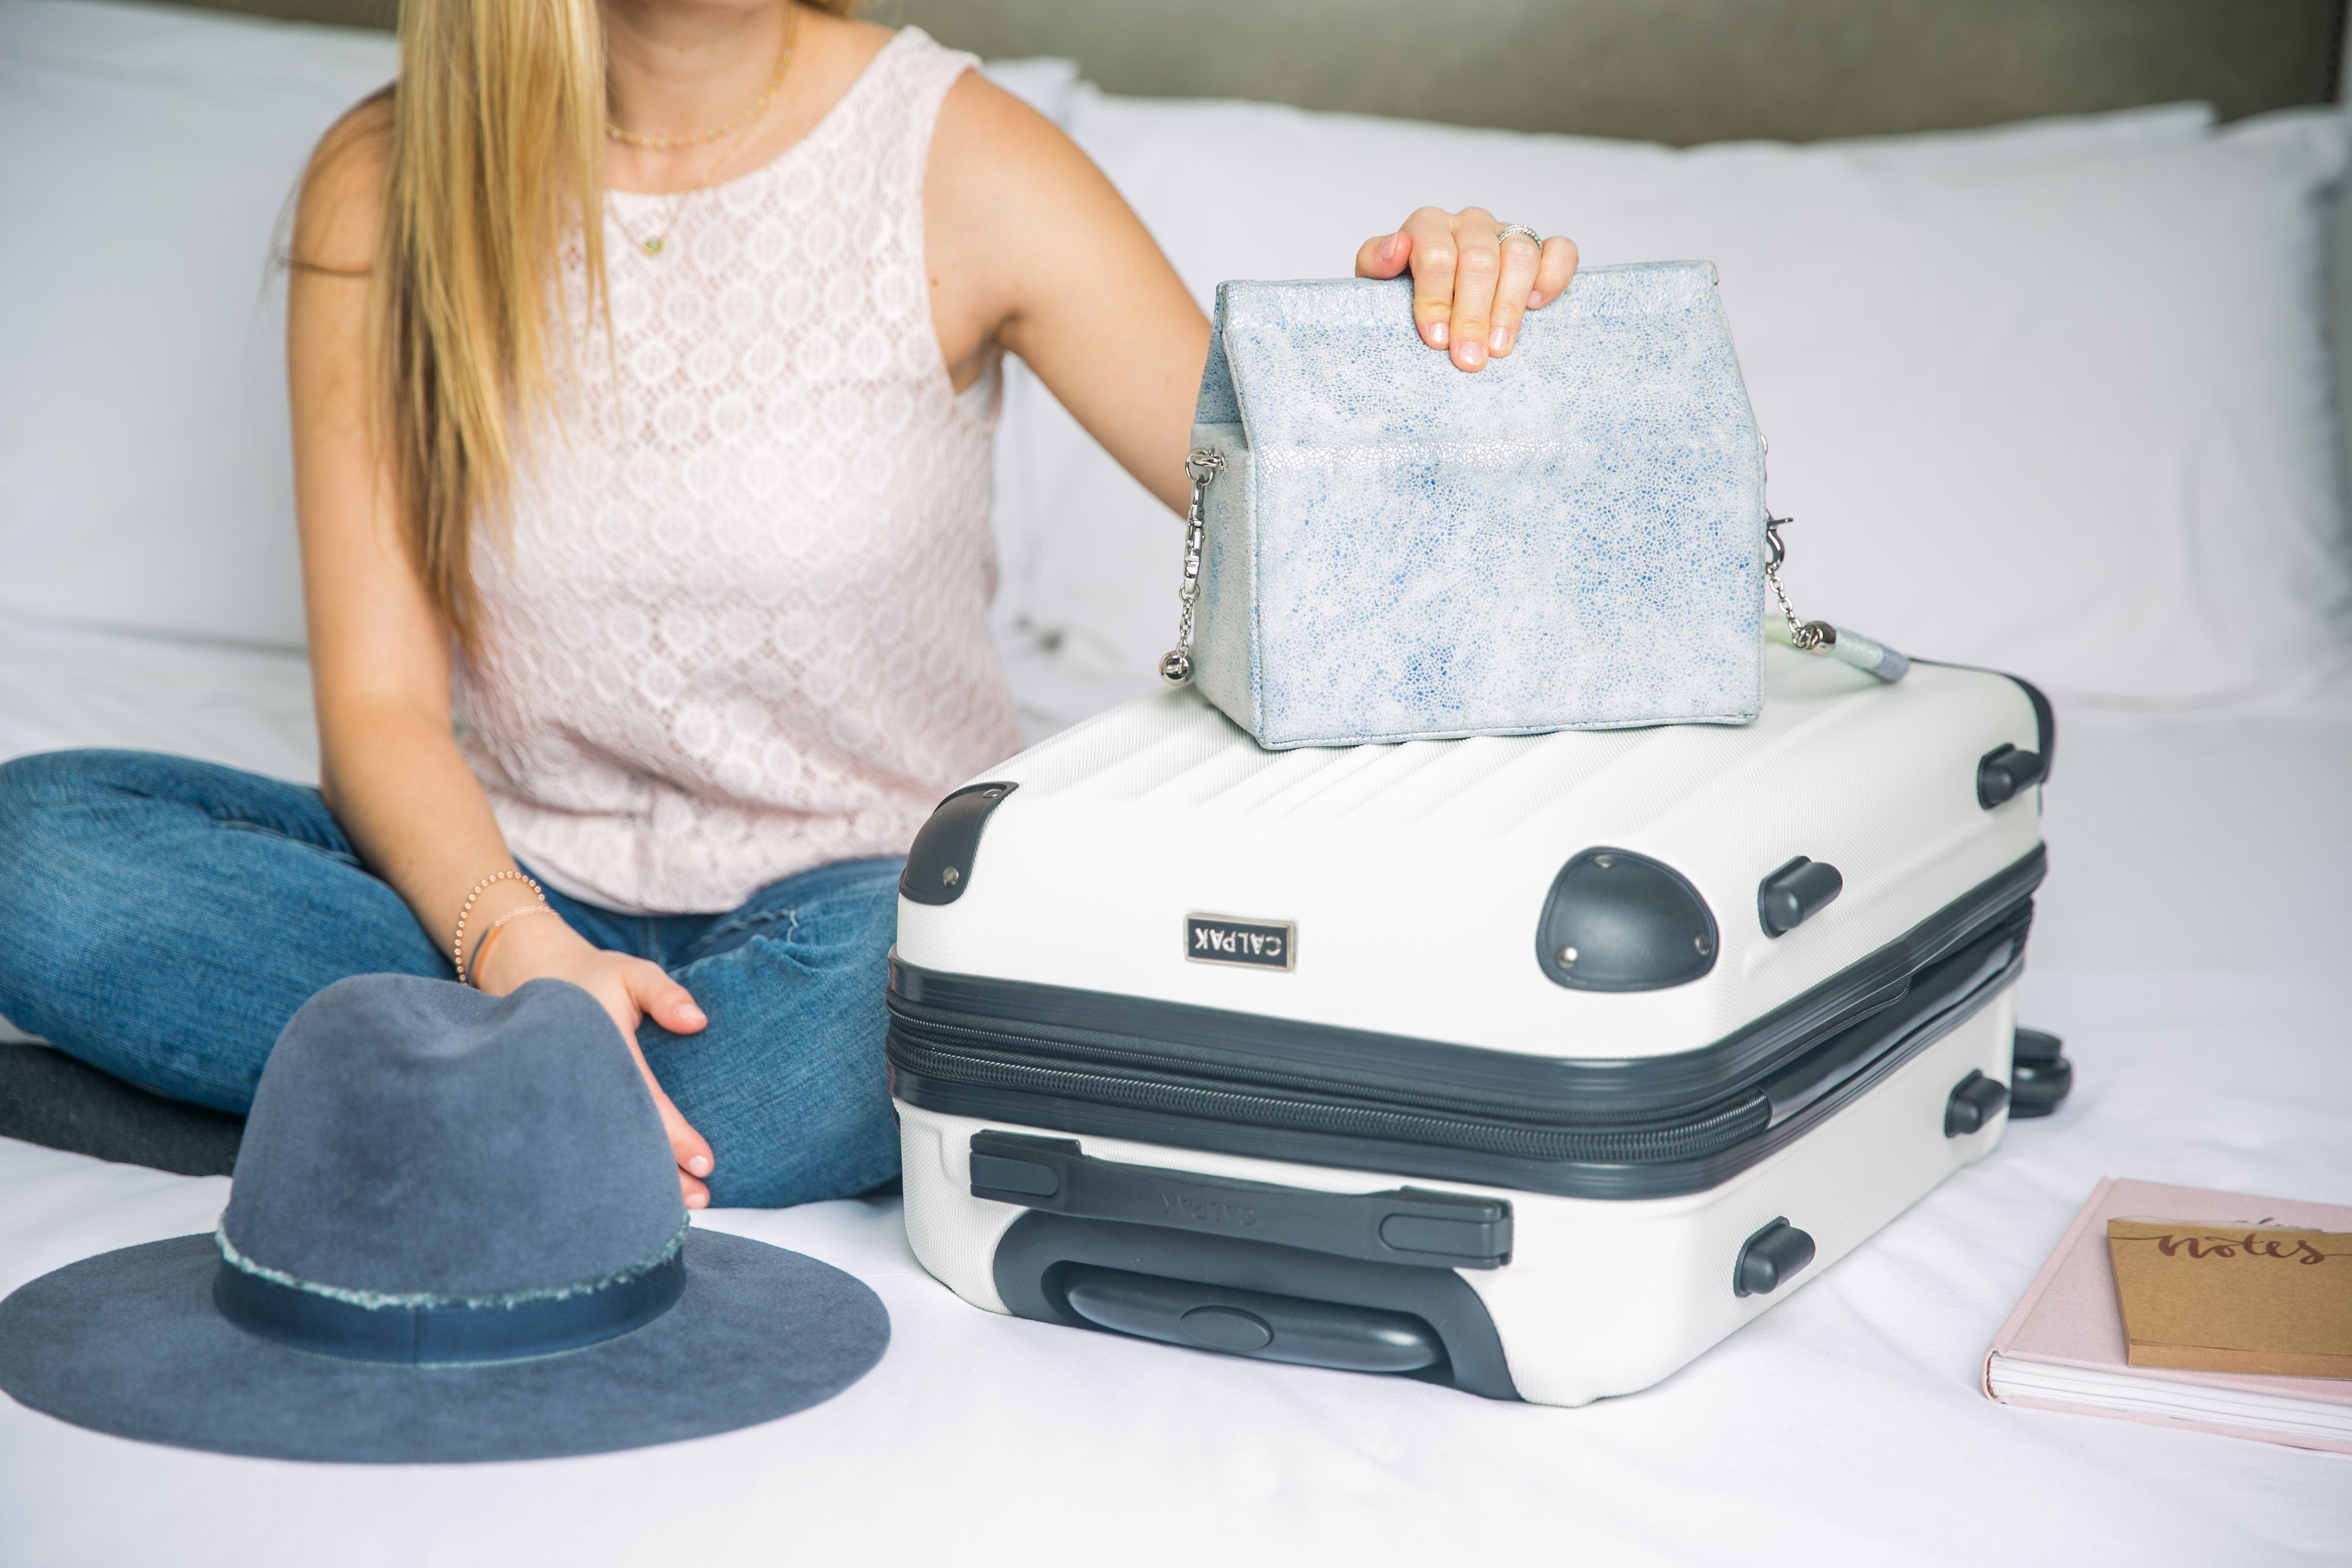 LDS Sister sitting on the bed with her packed and organized mission suitcase